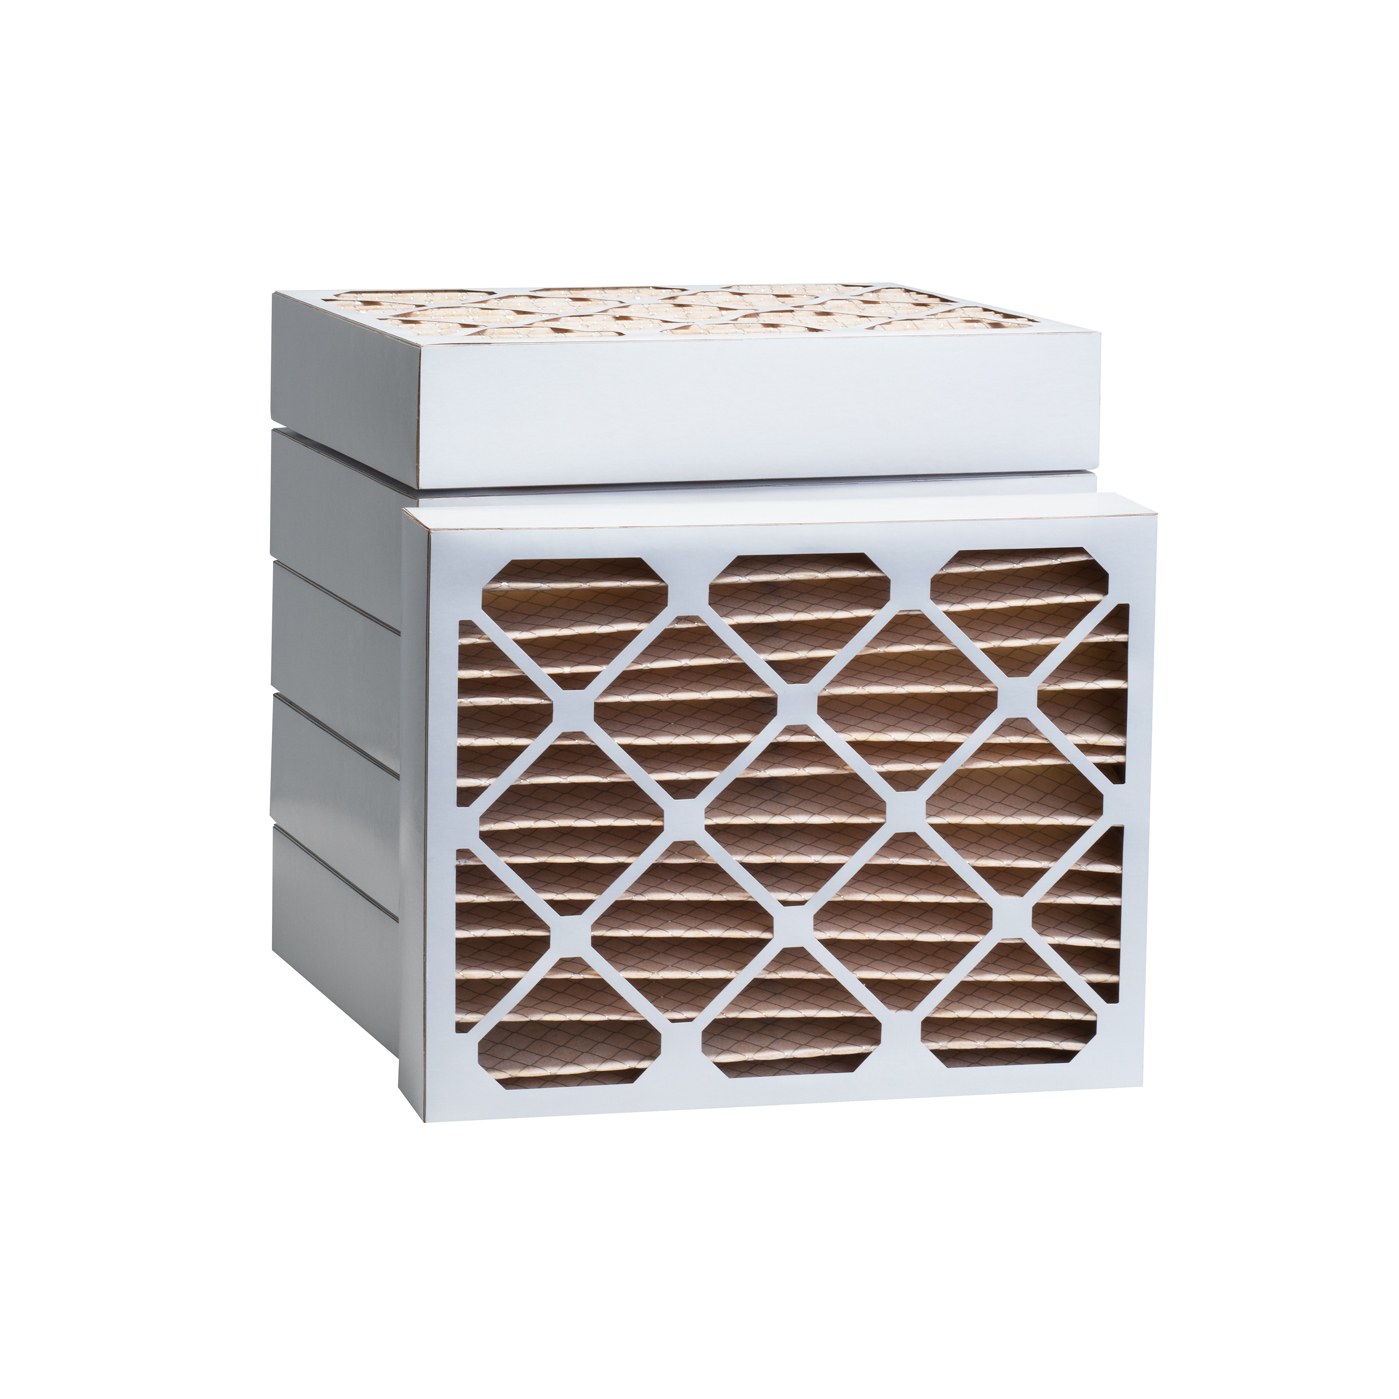 Tier1 1500 Air Filter - 12-1/8 x 15 x 4 (6-Pack) TIER1_P15S_6412D15_6_PACK